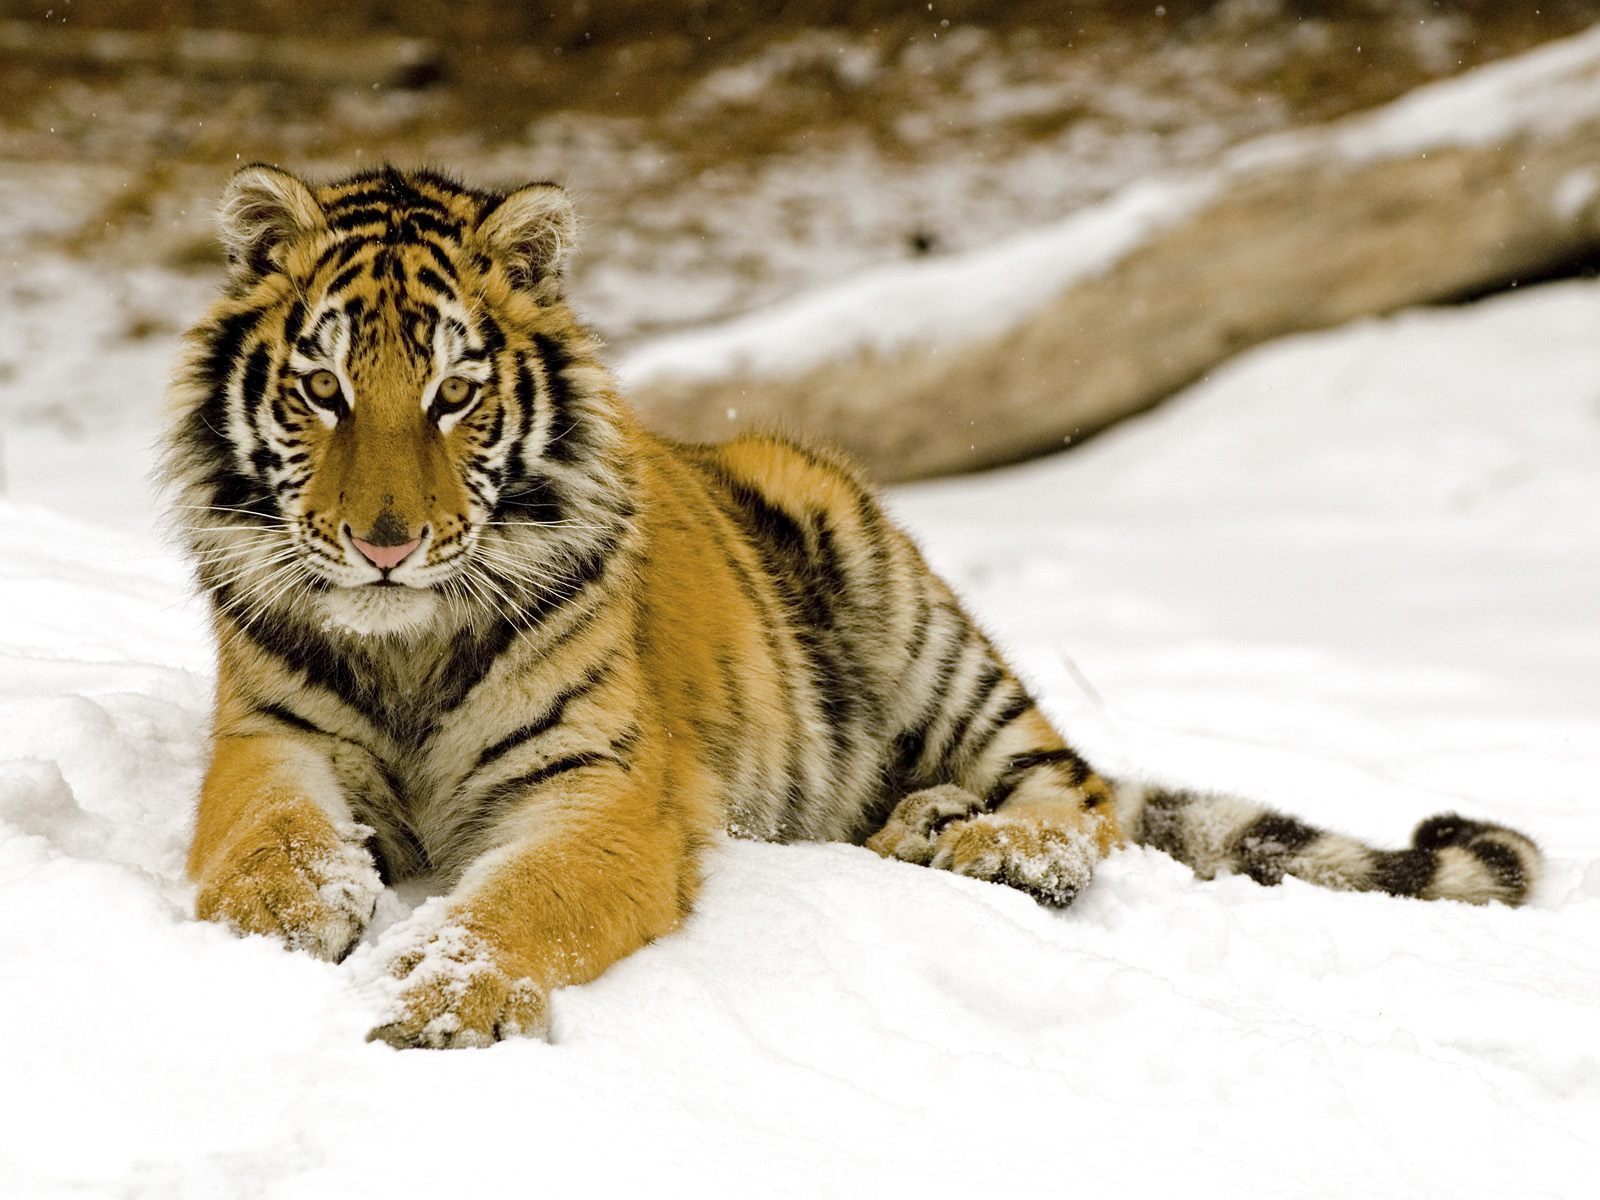 http://1.bp.blogspot.com/-hWbxkmjgvig/Tw3ibyHf9KI/AAAAAAAAJGU/fN1Q-_6p8UQ/s1600/The-best-top-desktop-tiger-wallpapers-hd-tiger-wallpaper-20.jpg